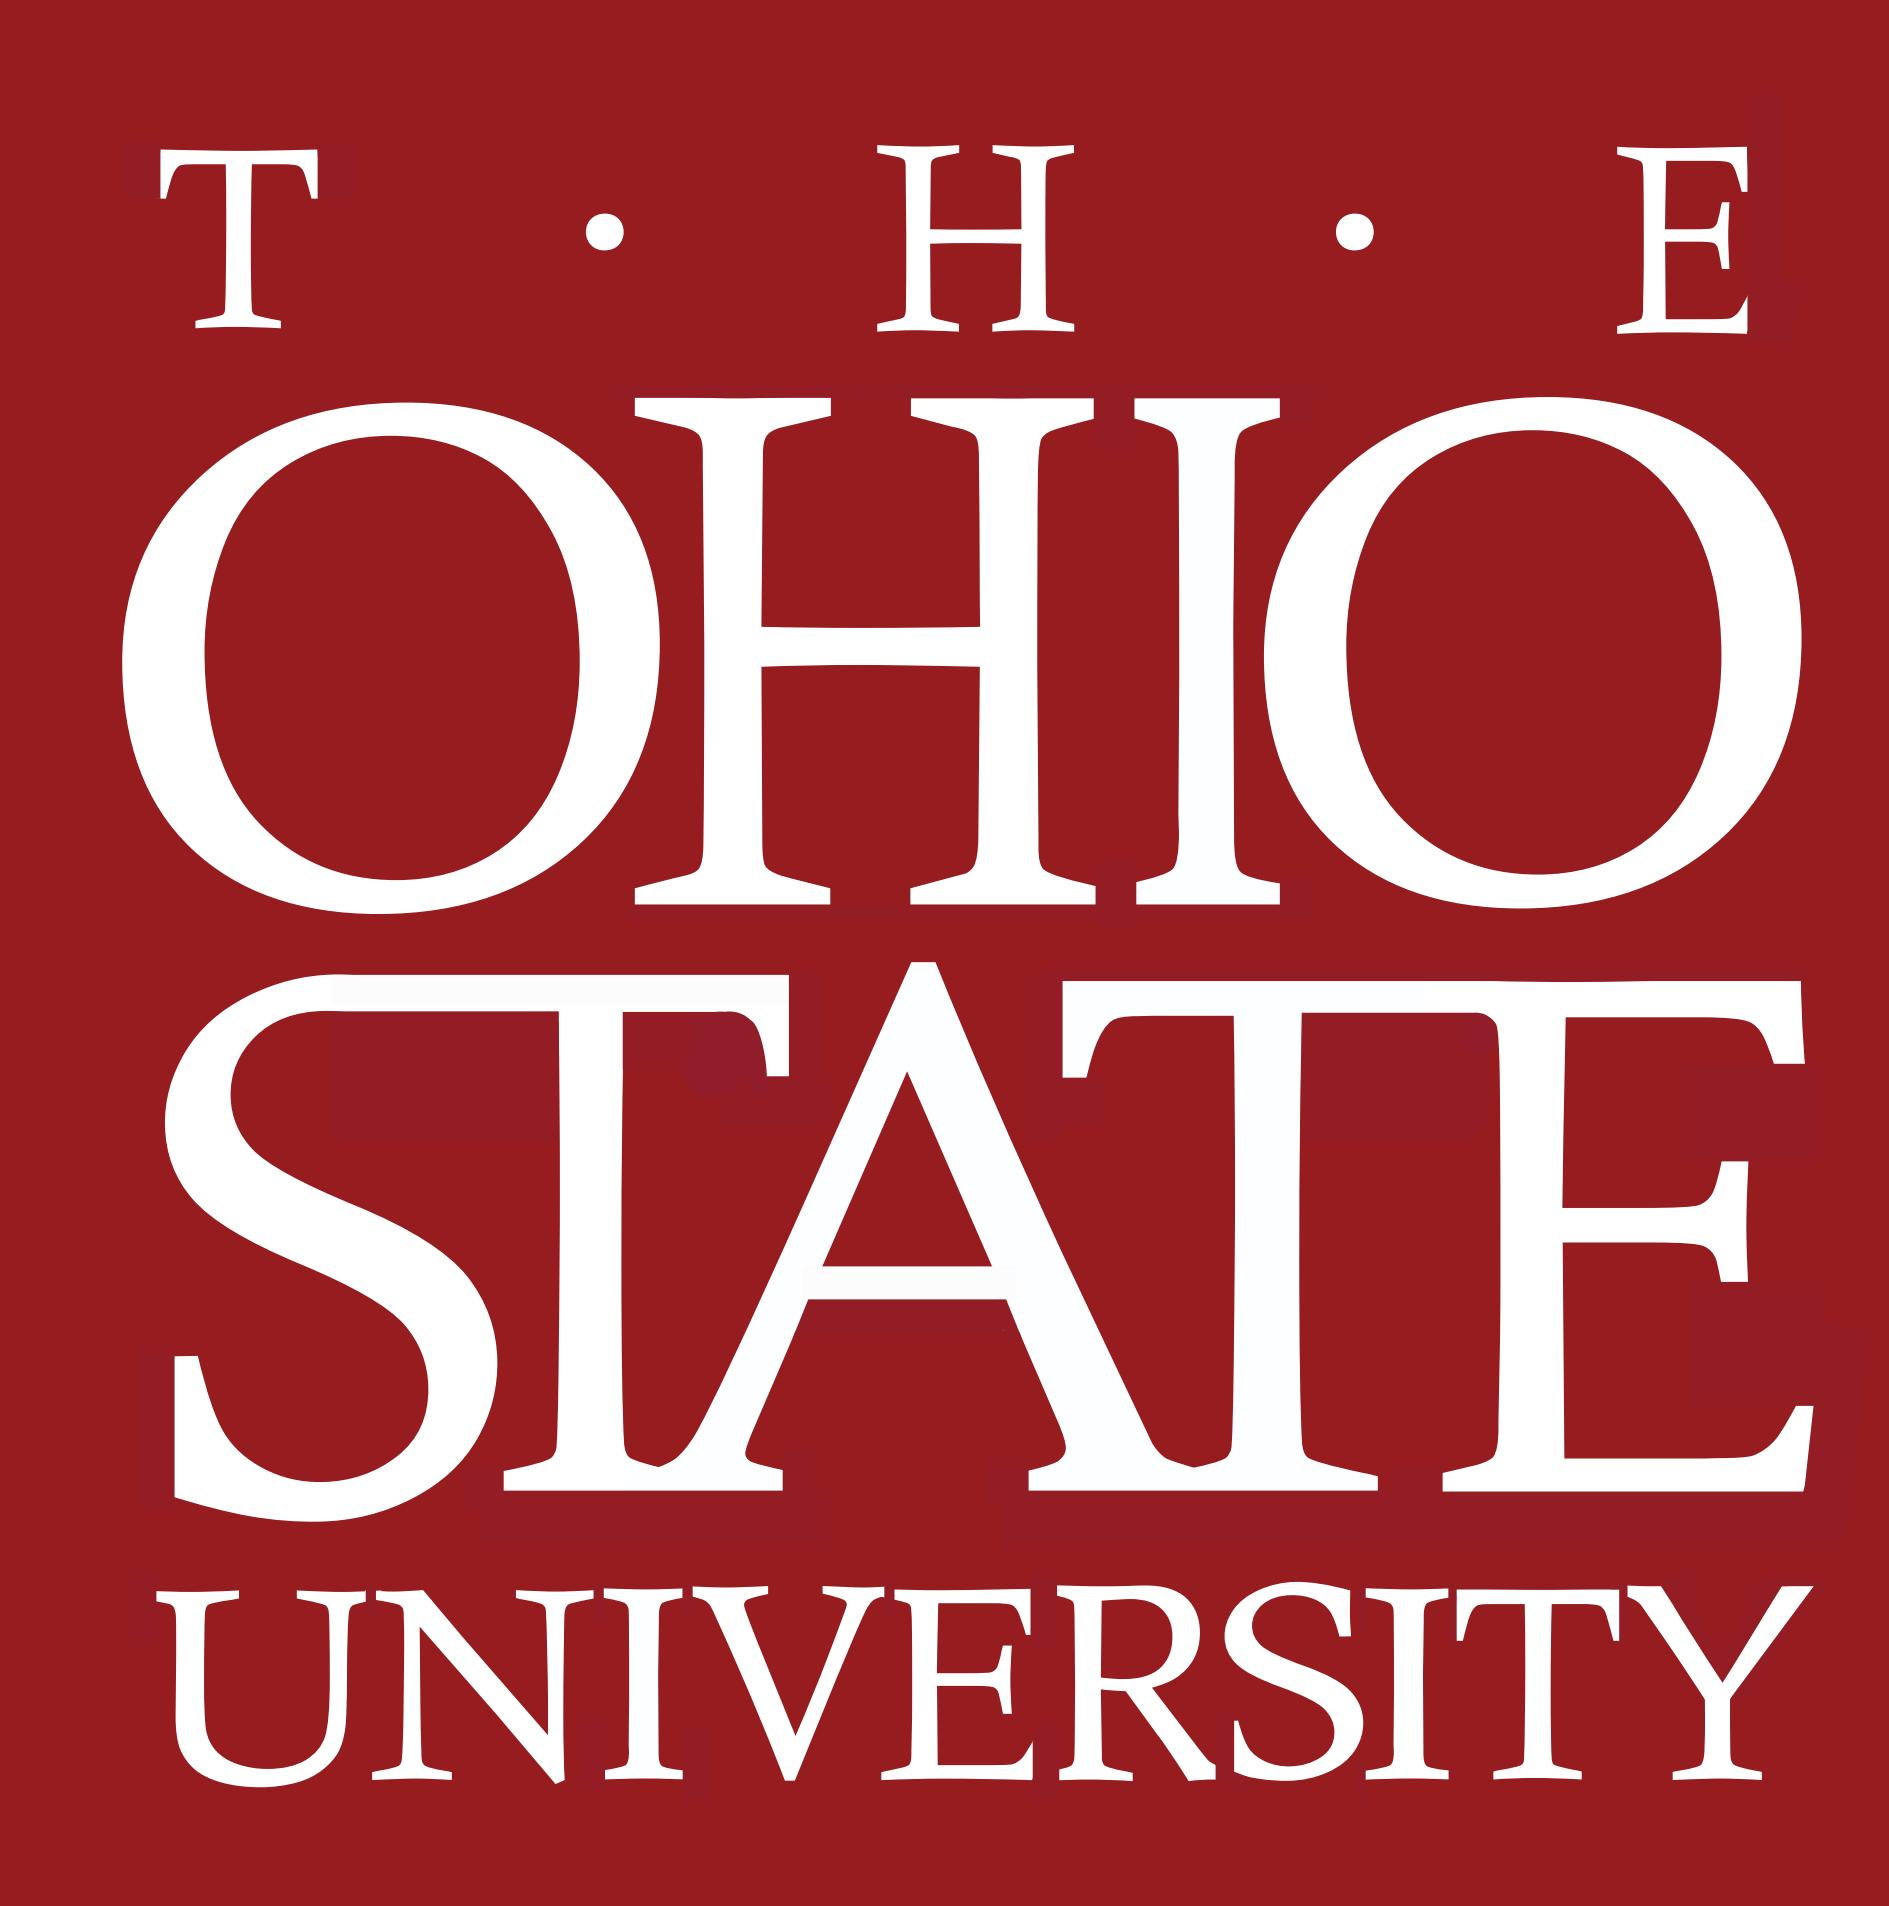 Ohio state football logo clipart png free download Ohio State University Clip Art - ClipArt Best png free download